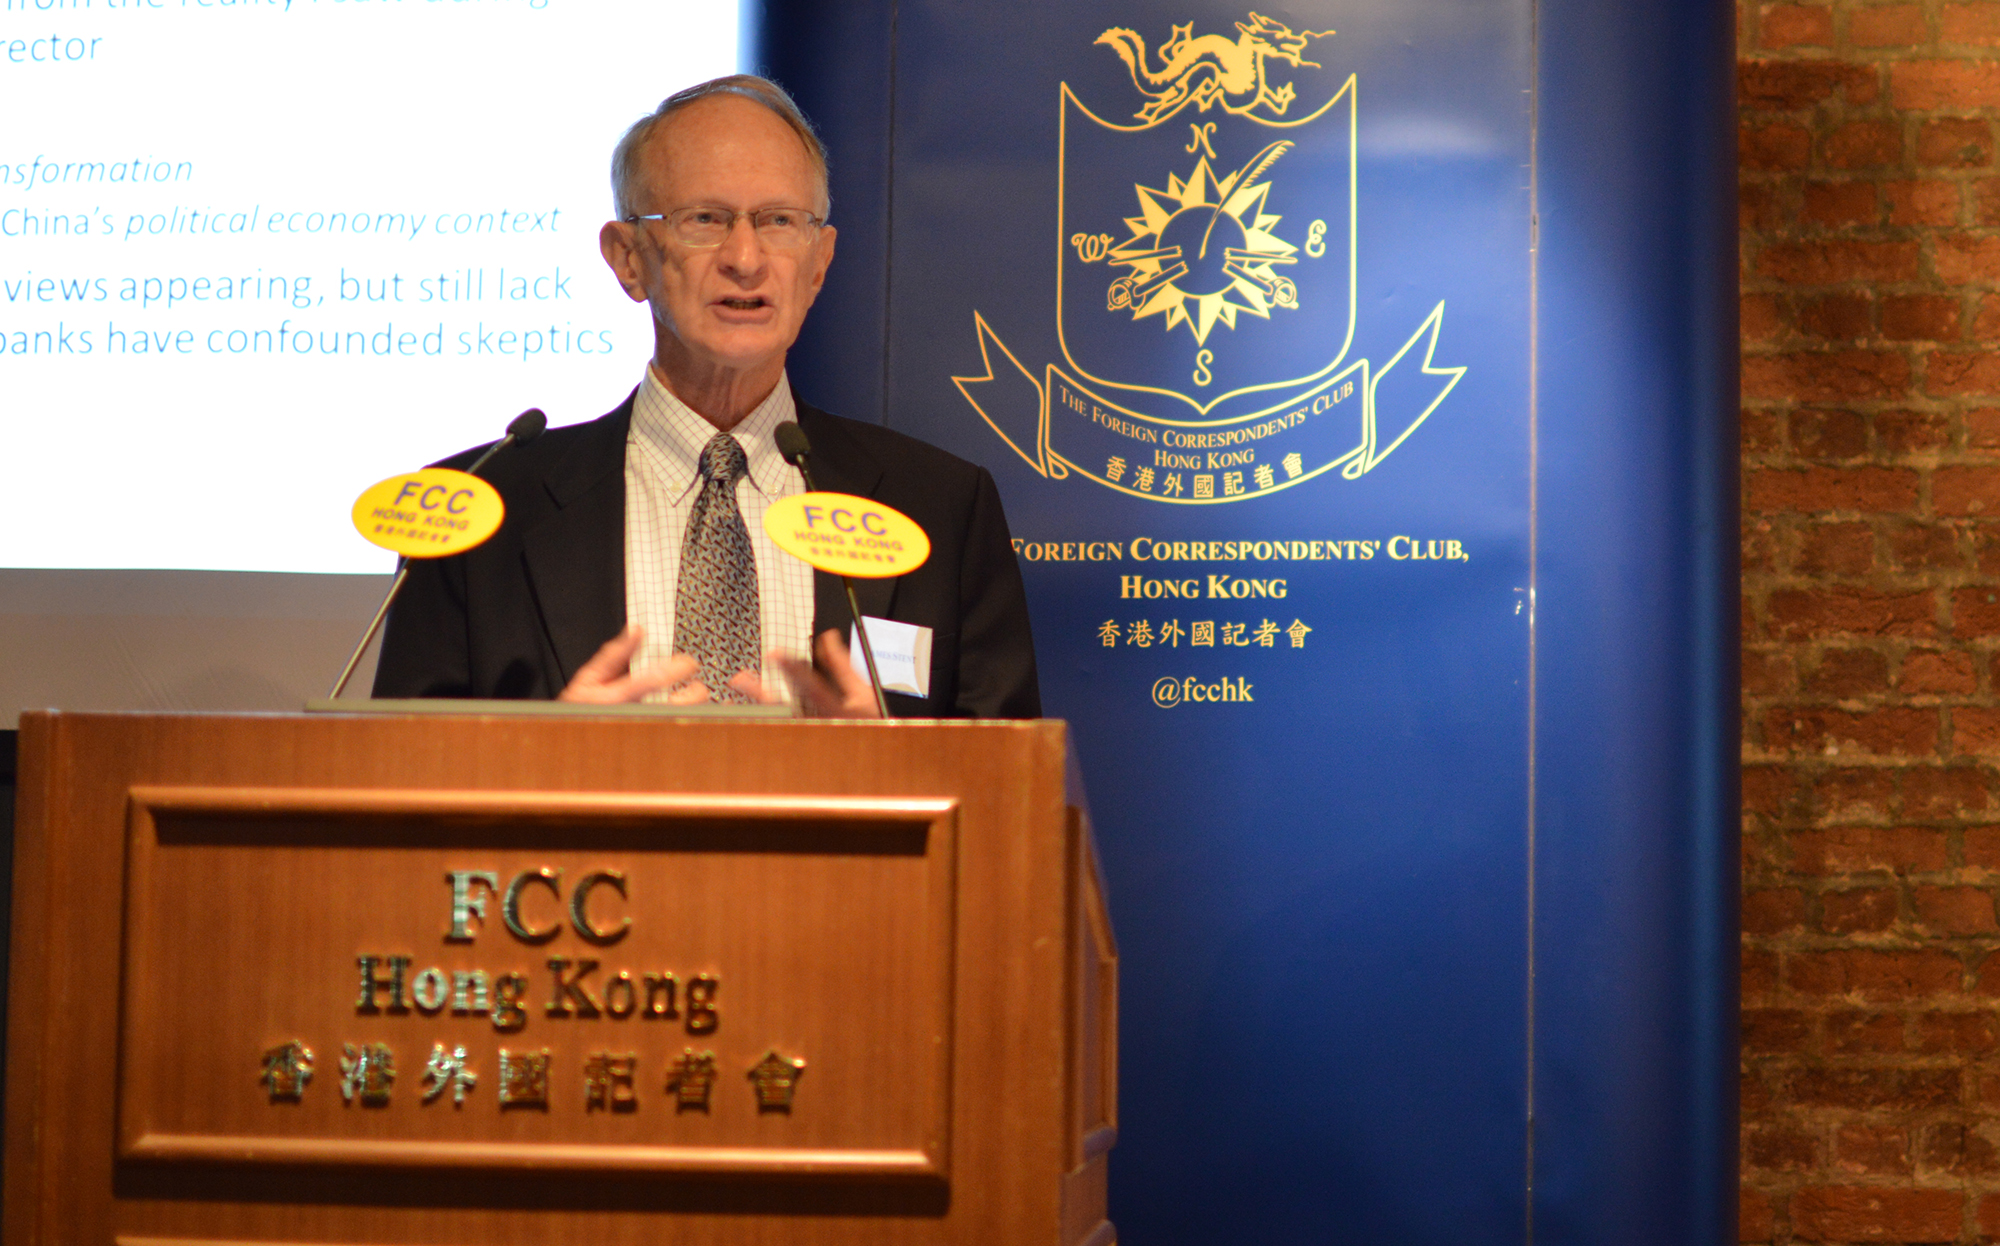 James Stent, a former director of the audit committee of the China Everbright Bank. Photo: Sarah Graham/FCC